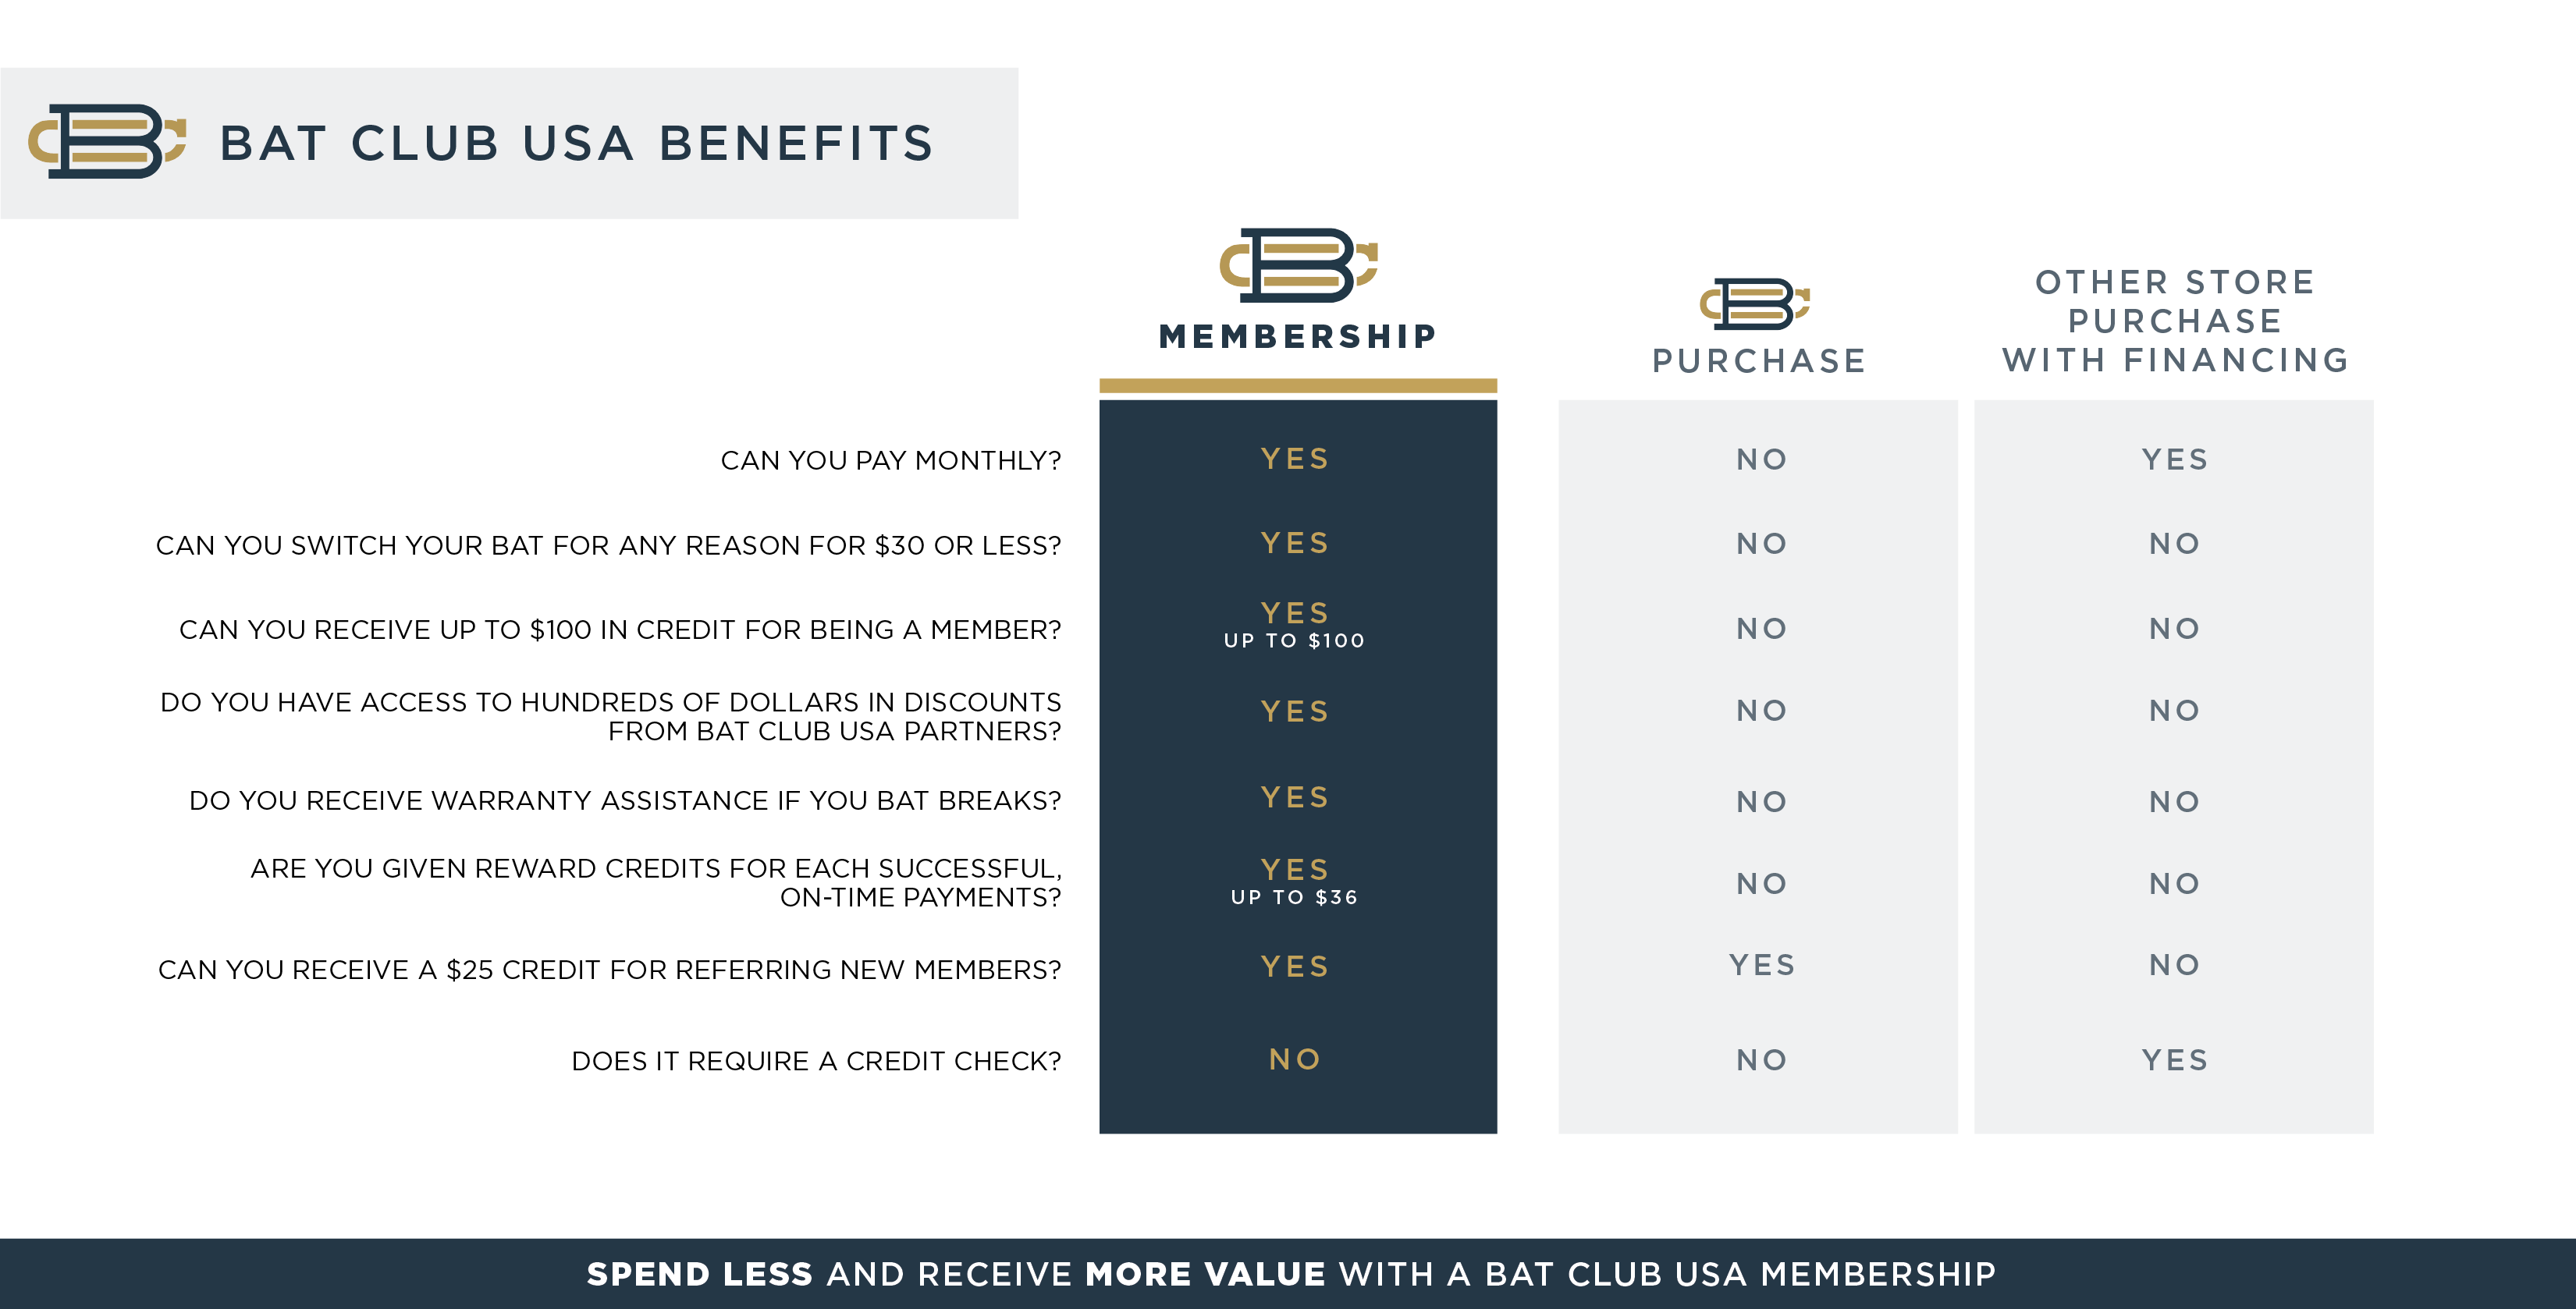 Bat Club USA is the better choice. With a set of benefits unmatched, it's an easy decision.